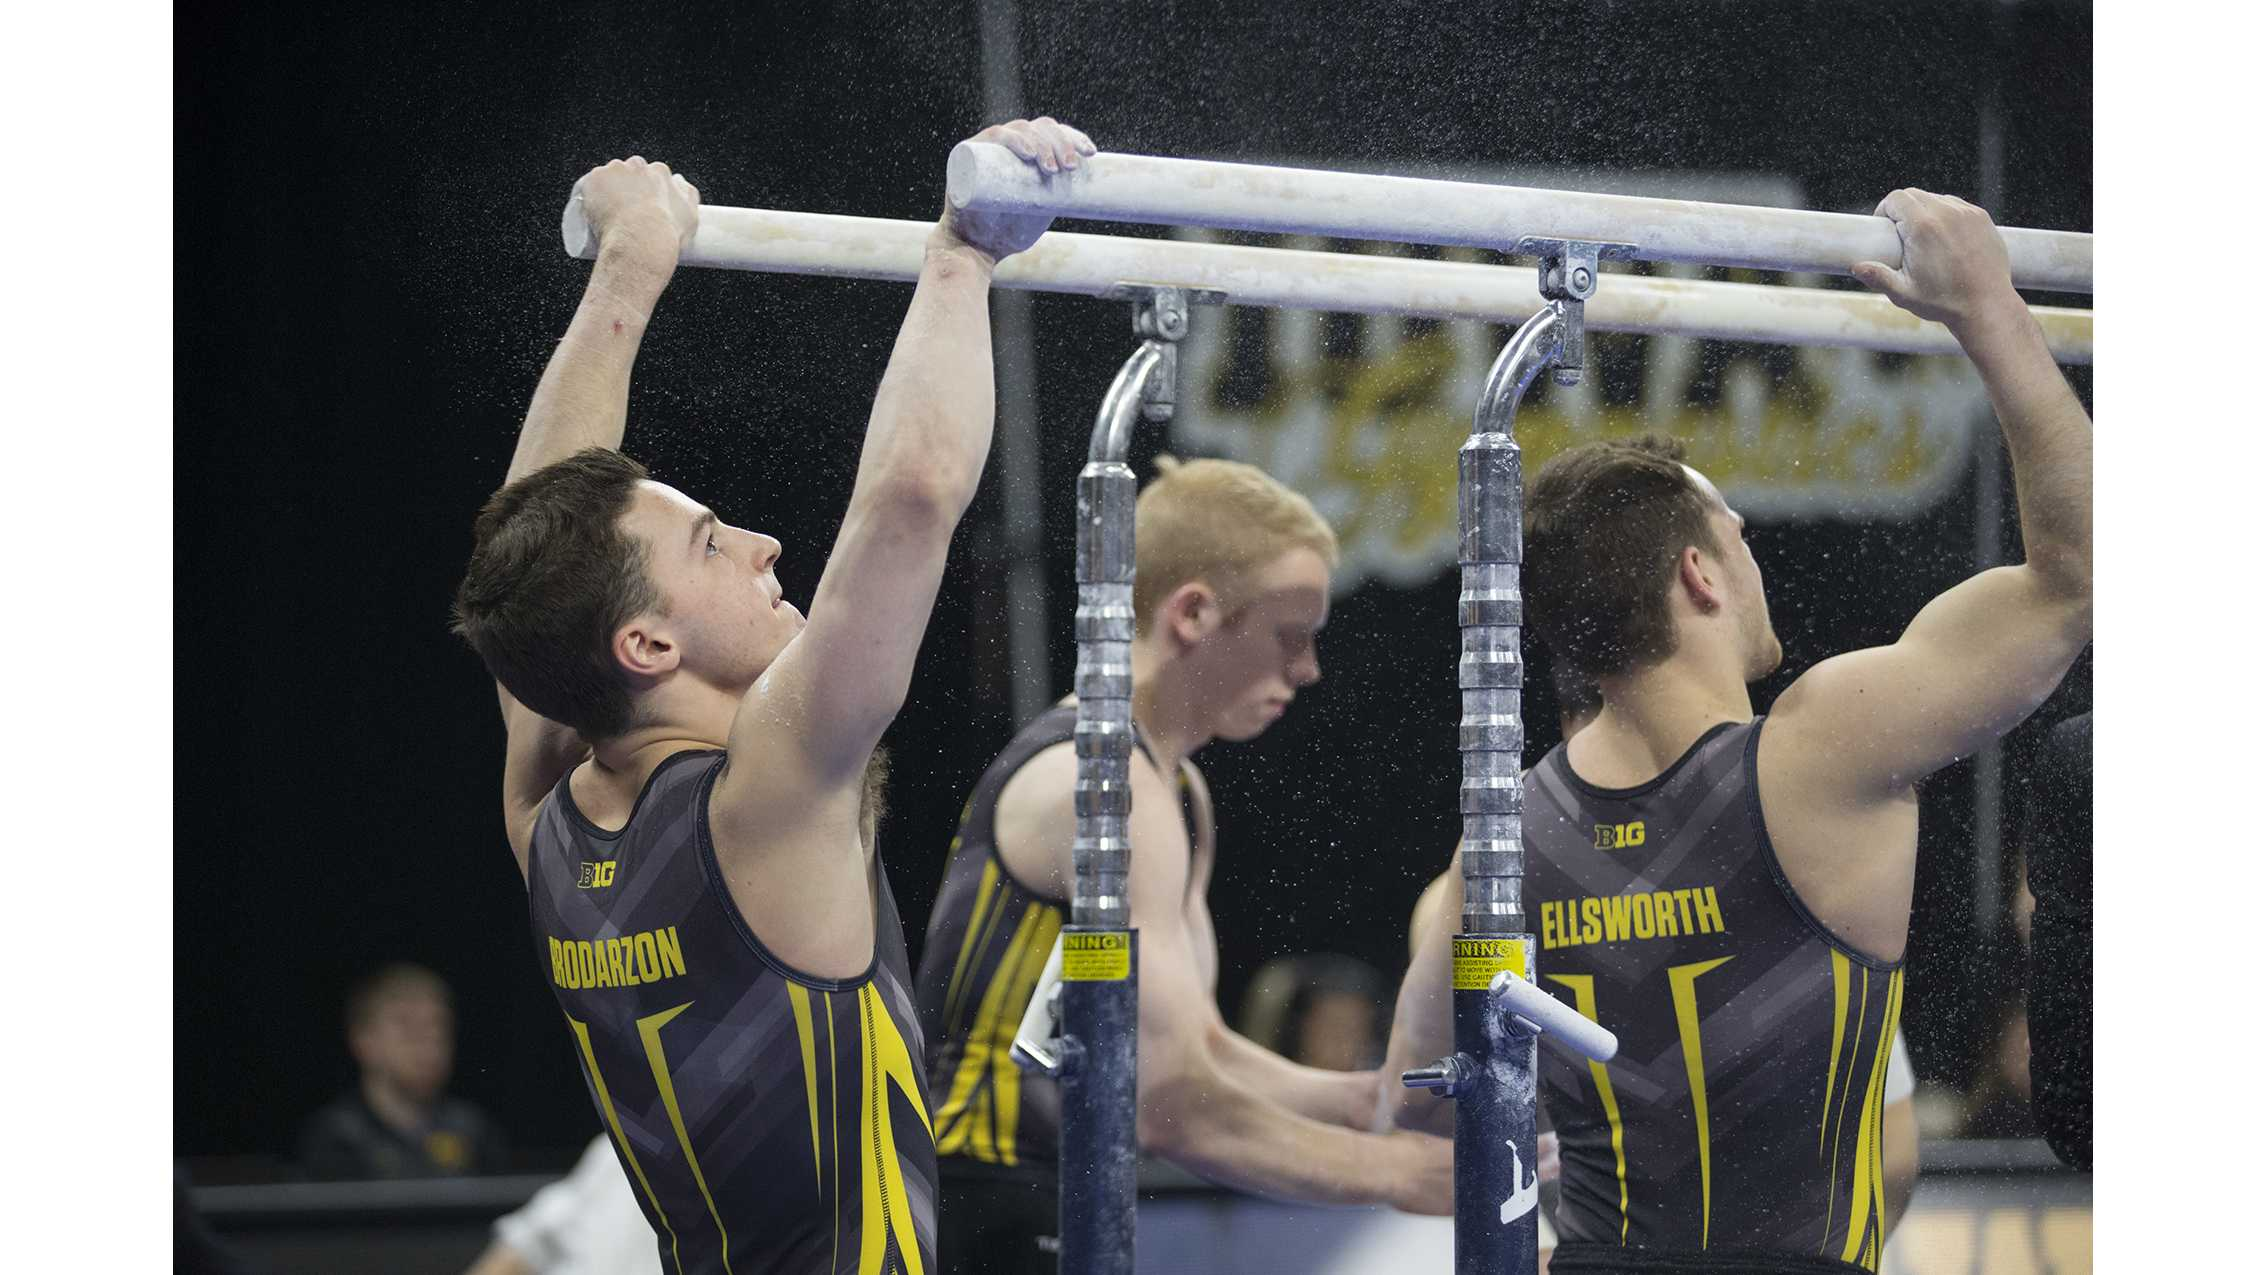 Hawkeye members Jake Brodarzon, Nick Merryman, and Dylan Ellsworth put chalk on the parallel bars before they compete during men's gymnastics Iowa vs. Penn State and Arizona State on March 3, 2018 at Carver Hawkeye Arena.